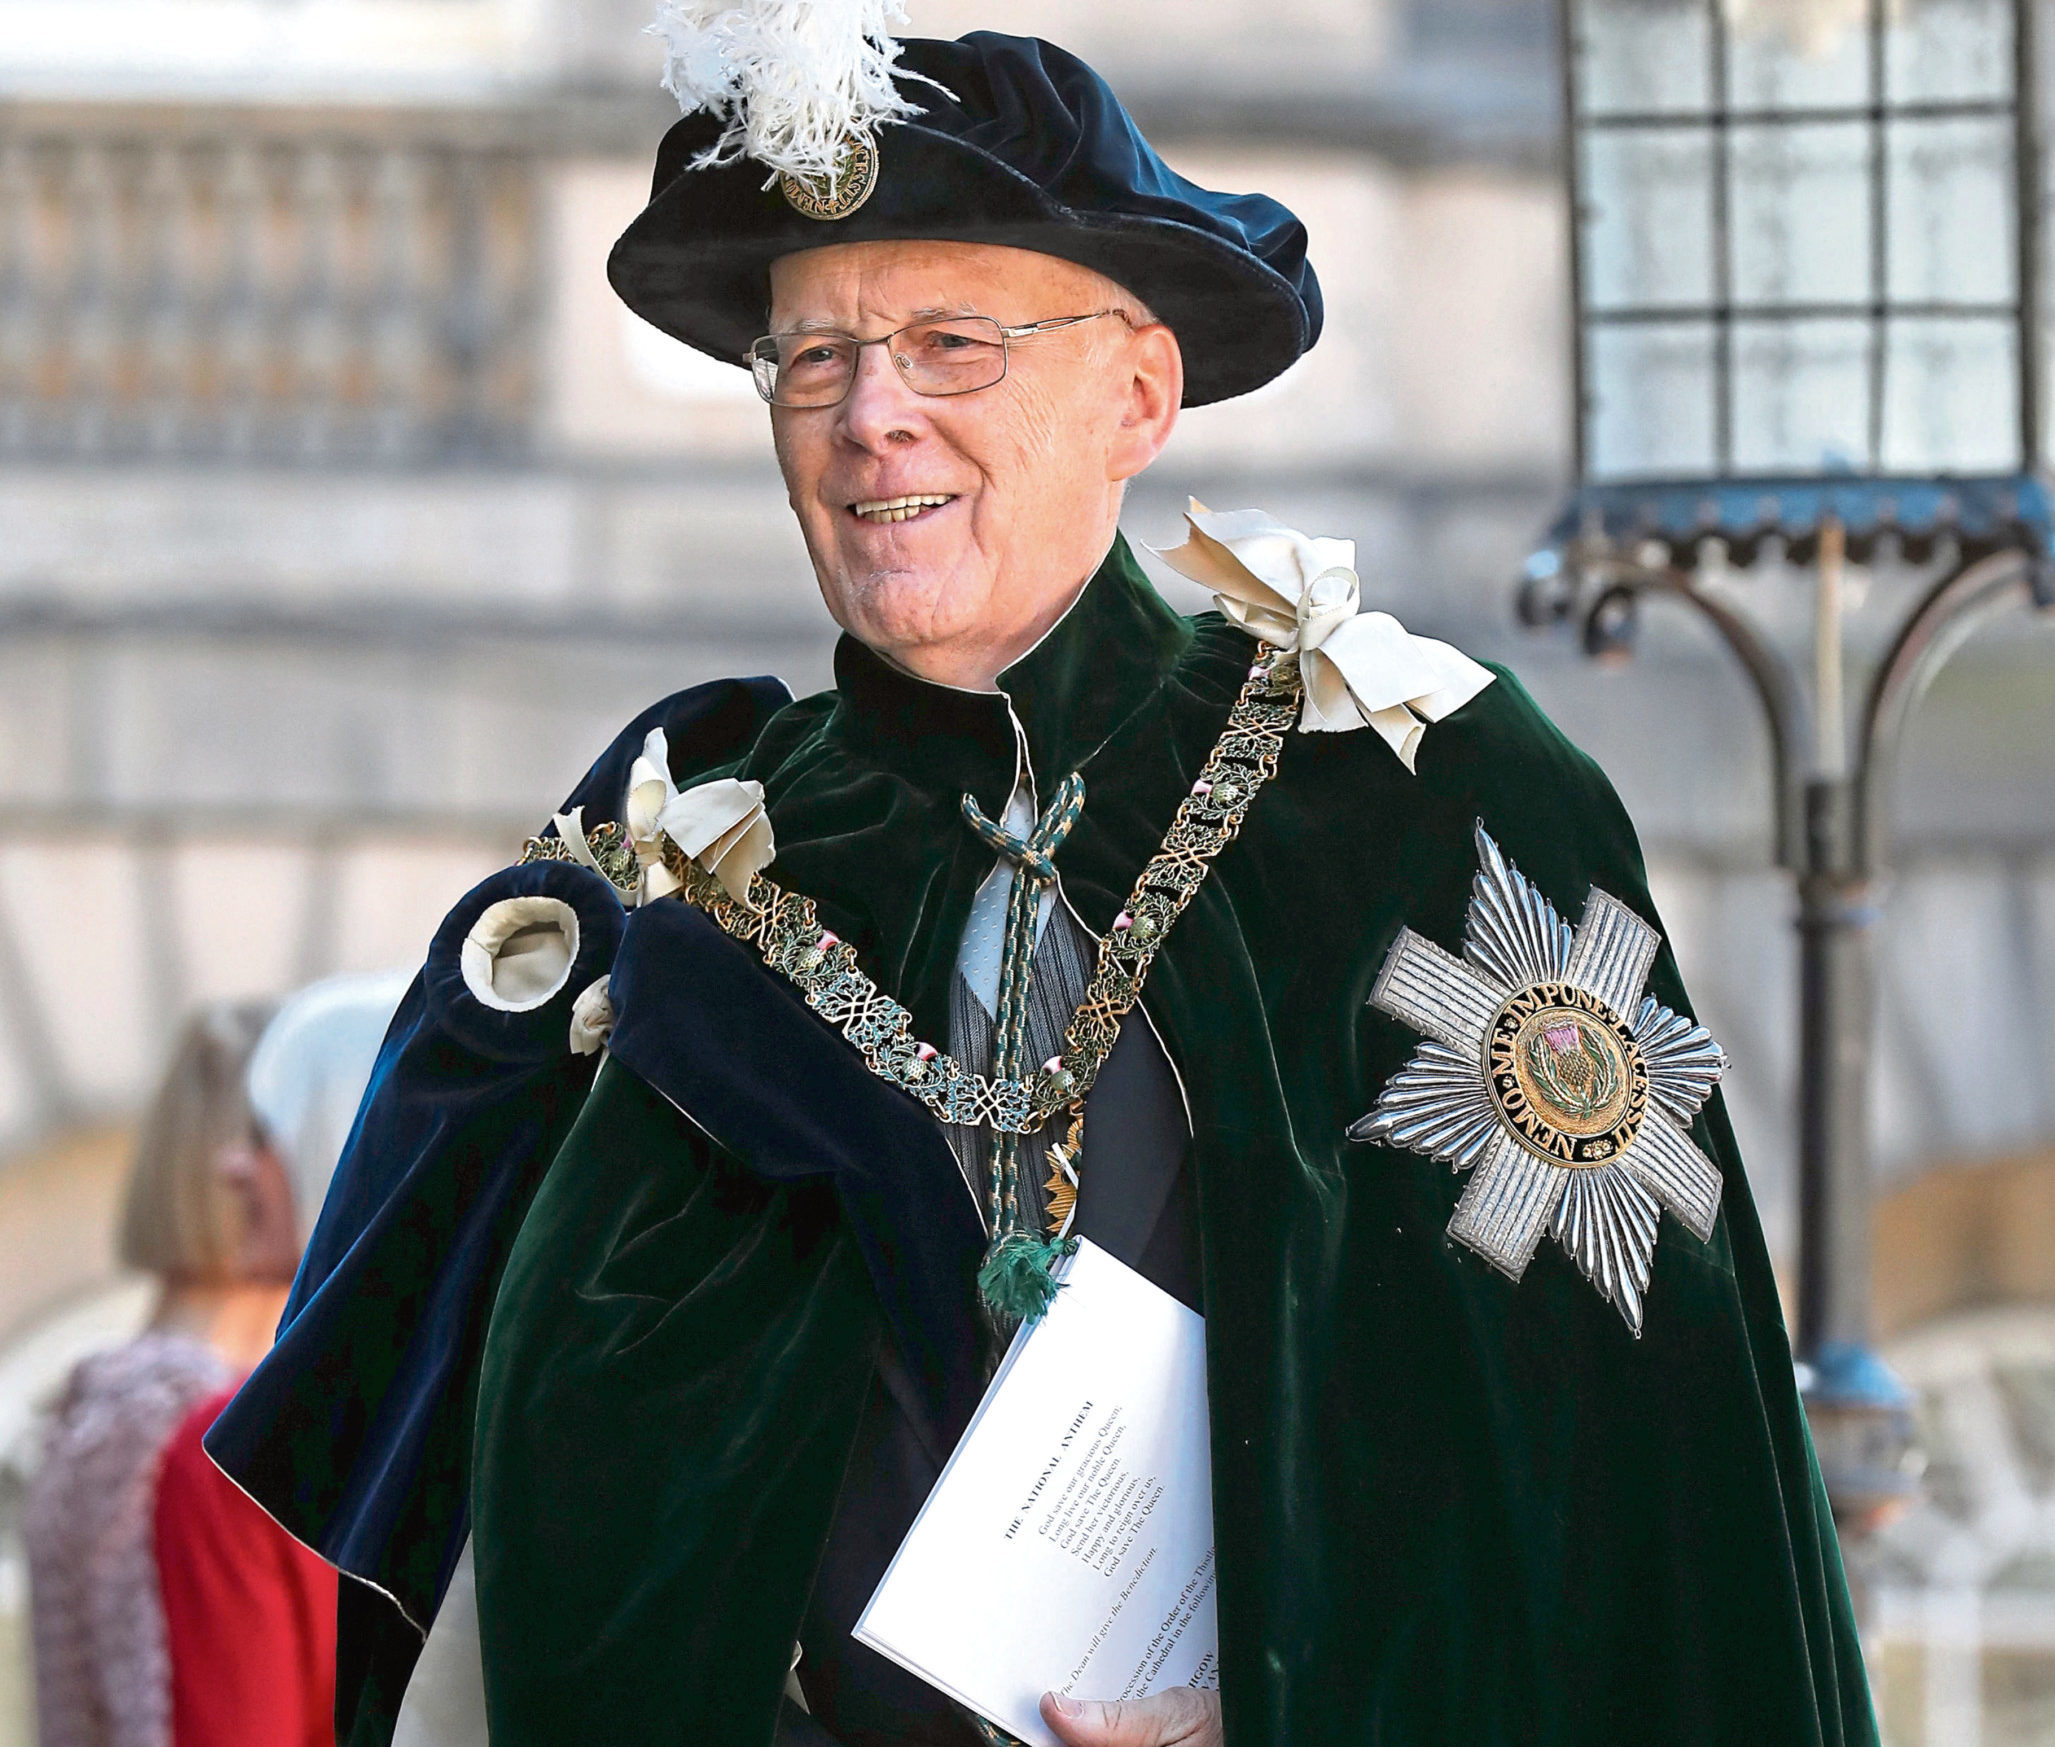 Sir Ian Wood leaves after attending the Order of the Thistle Service at St Giles' Cathedral in Edinburgh.